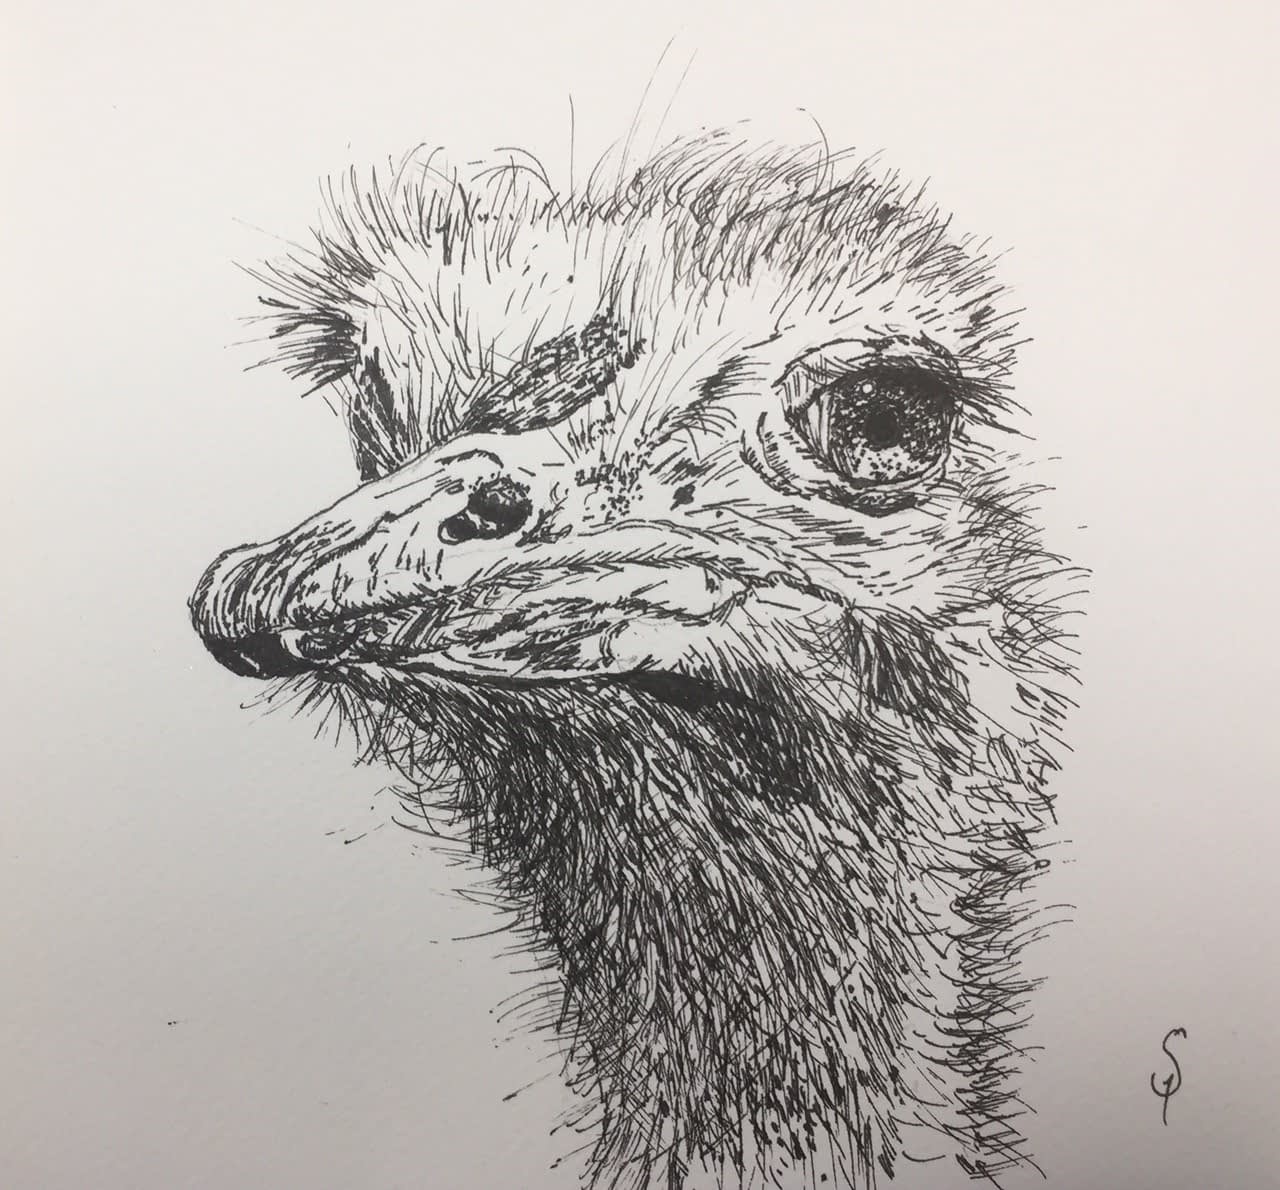 Ostrich - pen and ink